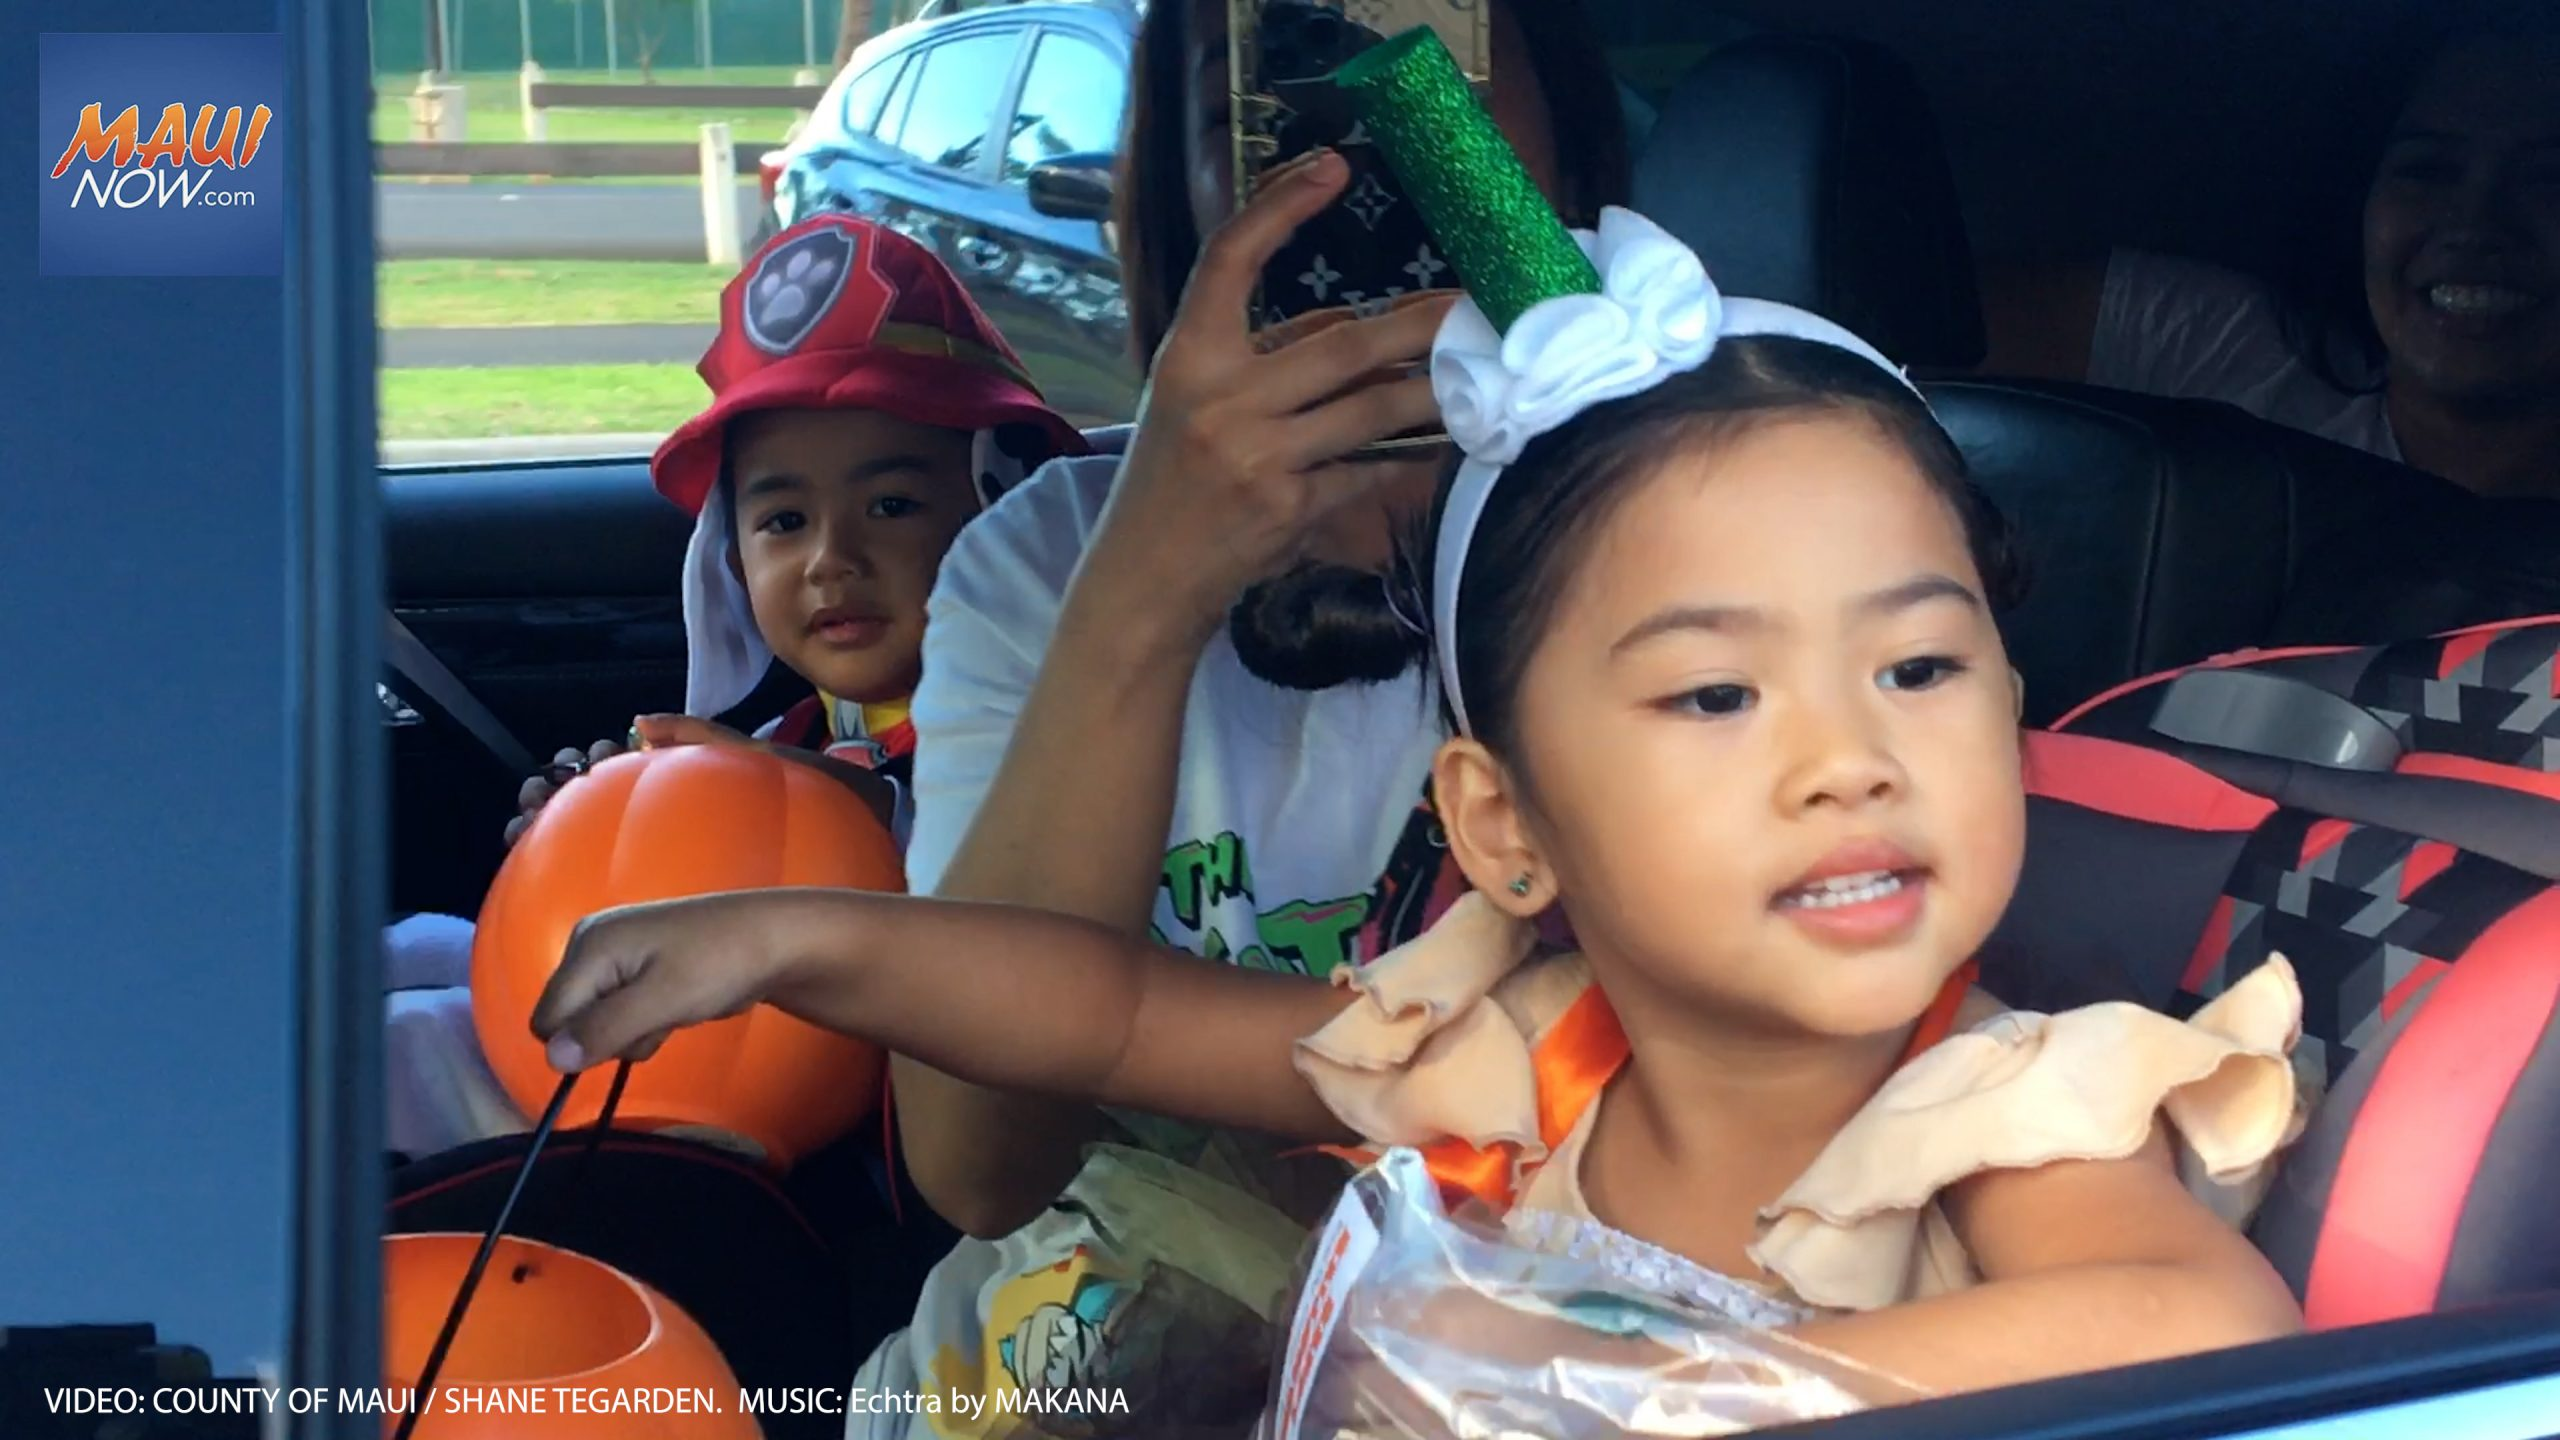 Maui Halloween Drive-Through Draws 2,168 Trick-Or-Treaters